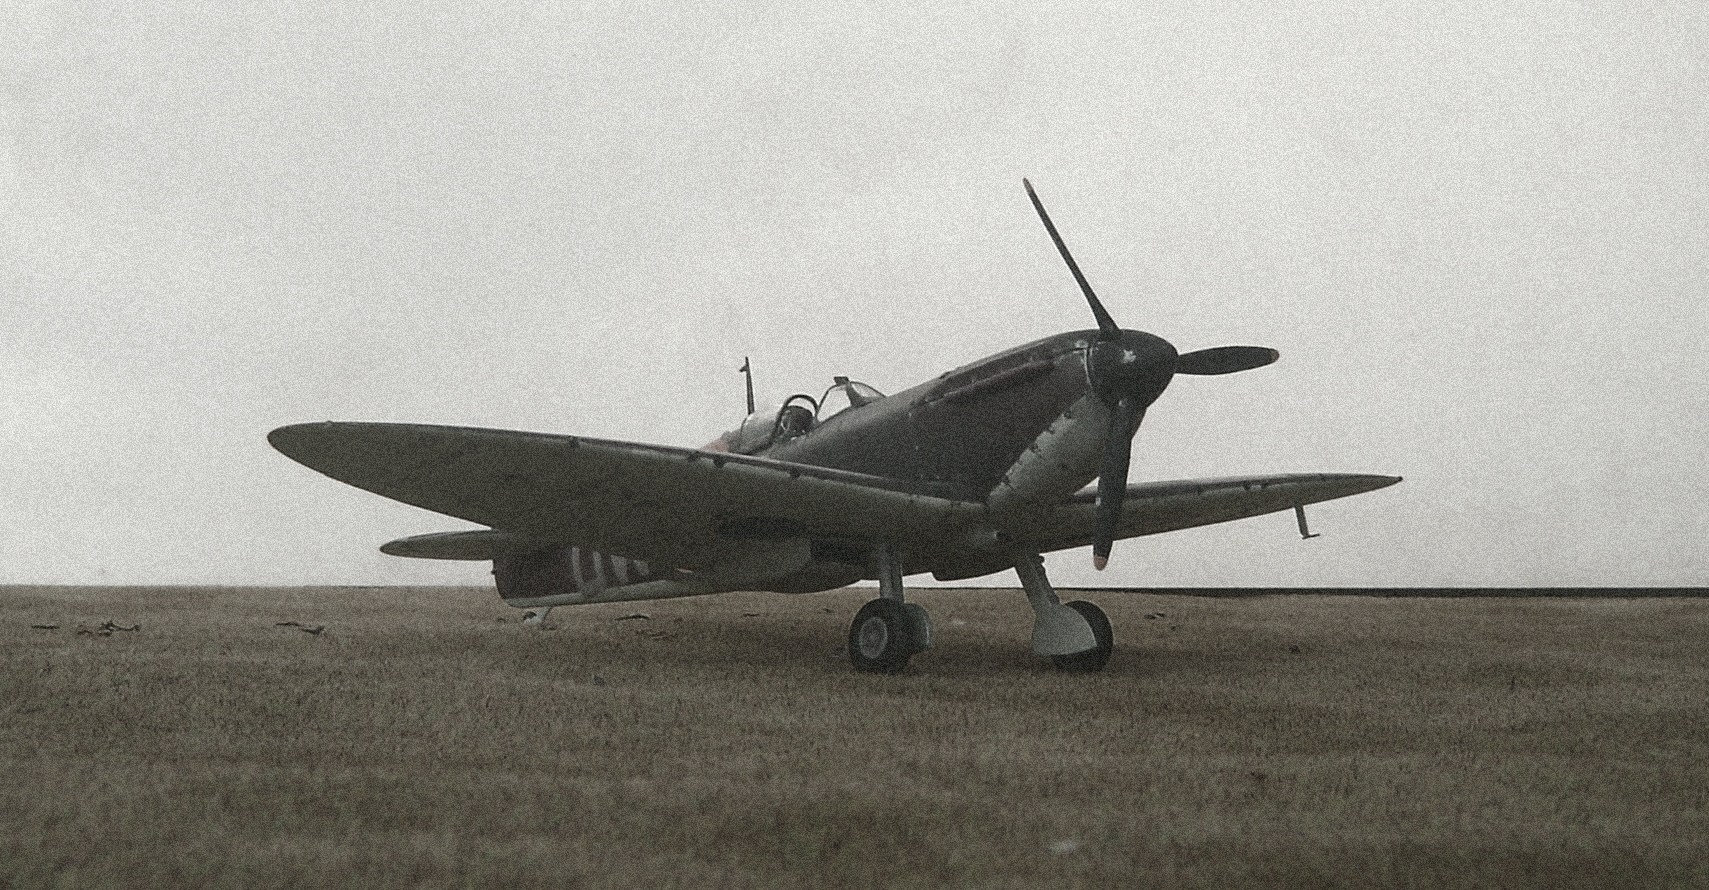 Spitfire Mk Ia of 610 Squadron 1940. Kit is 1/48th scale by Tamiya.